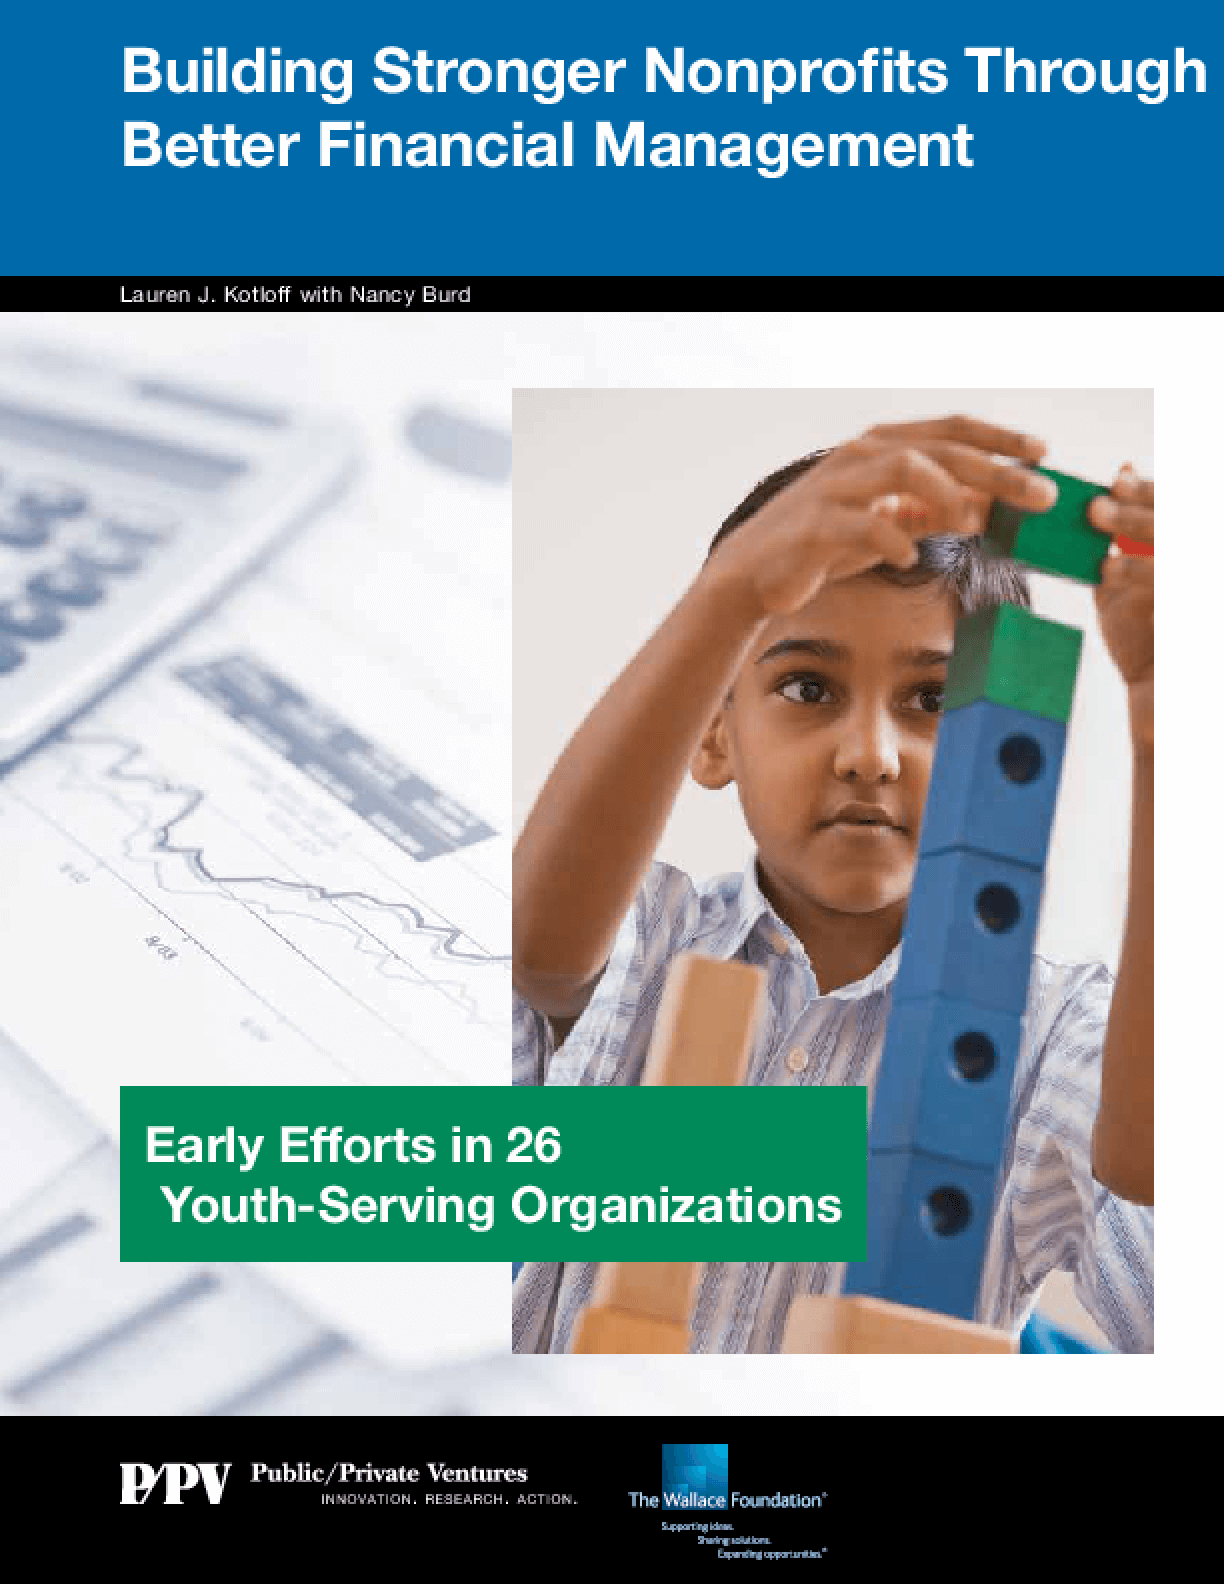 Building Stronger Nonprofits Through Better Financial Management: Early Efforts in 26 Youth-Serving Organizations